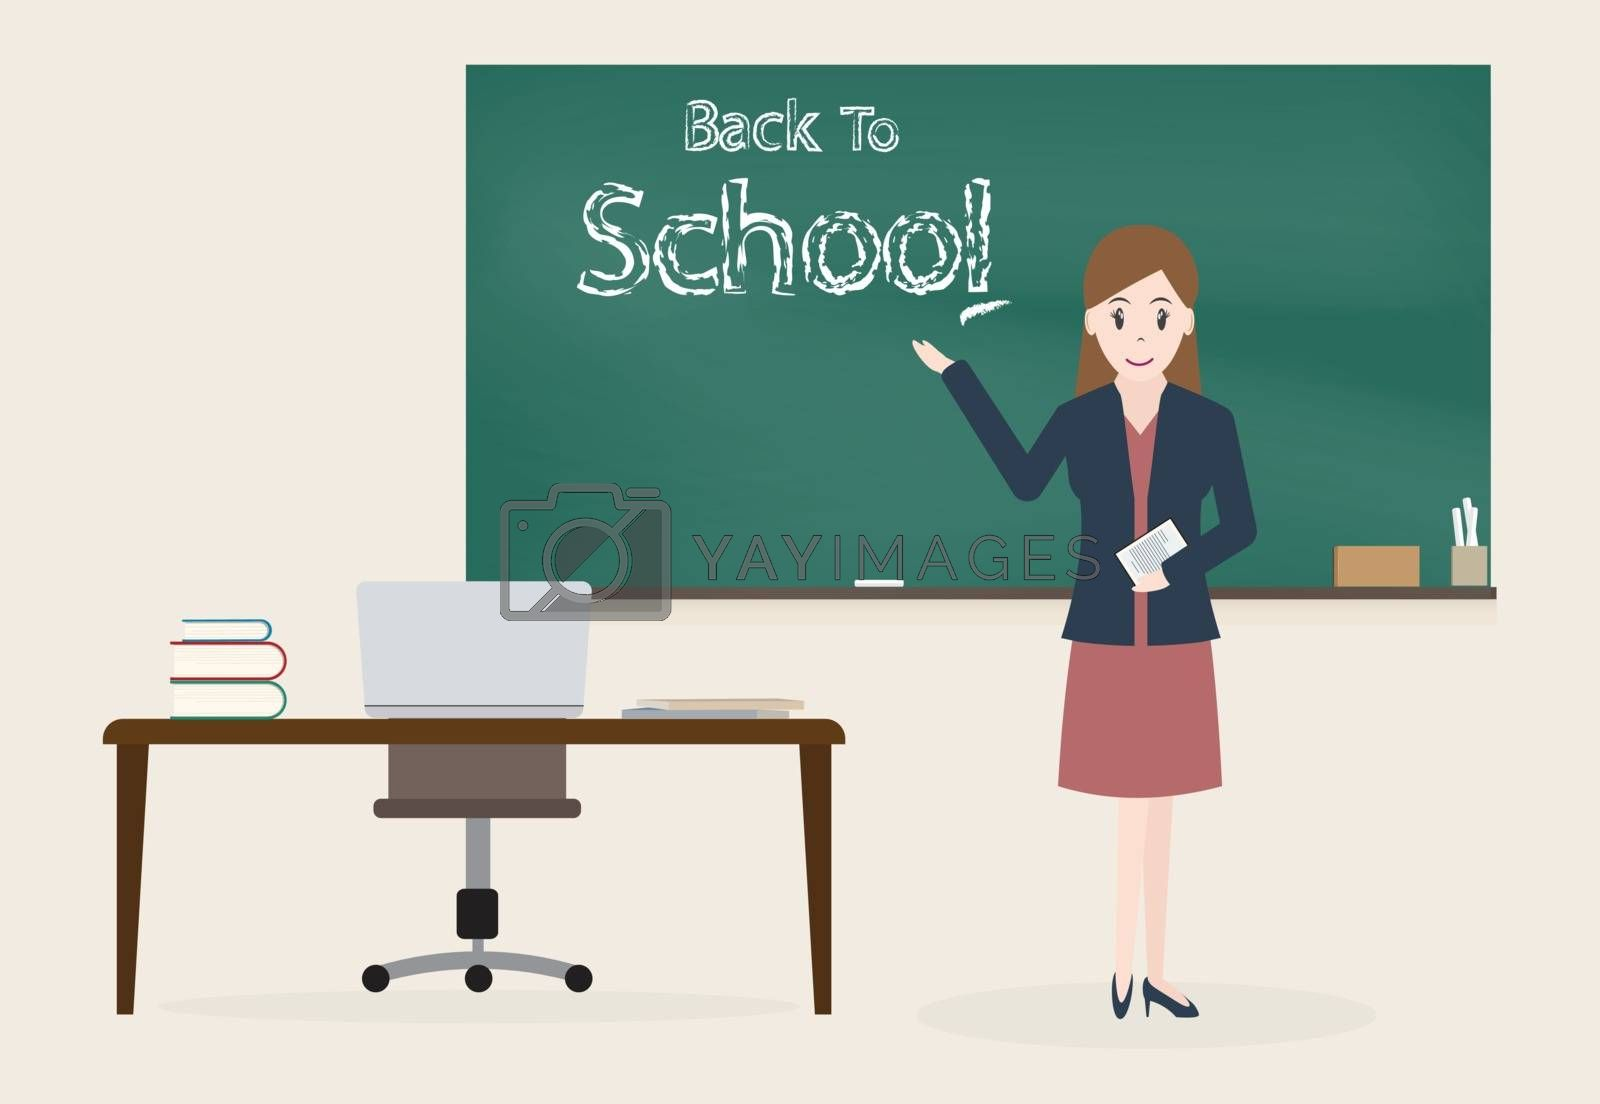 Female teacher and Back to school text on chalkboard background by Kheat